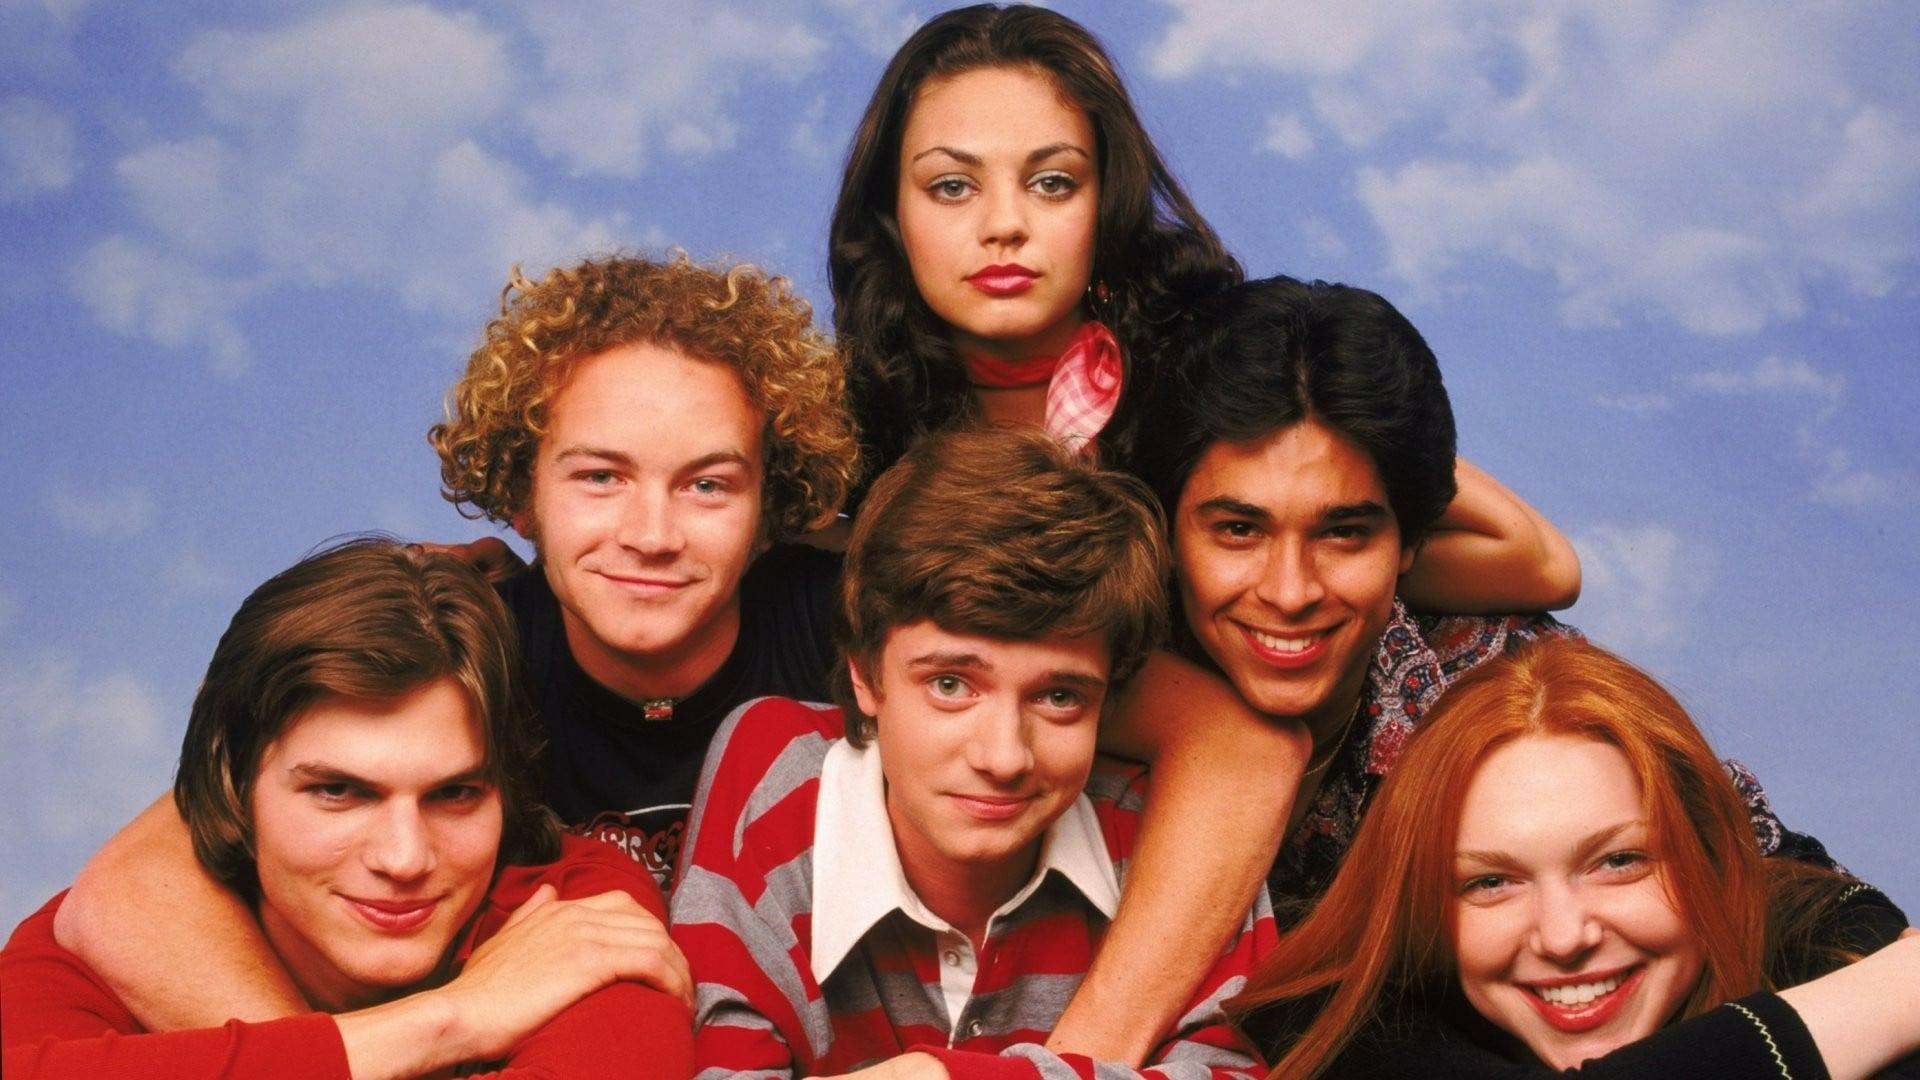 Hang out down the street with 'That '70s Show' on Netflix